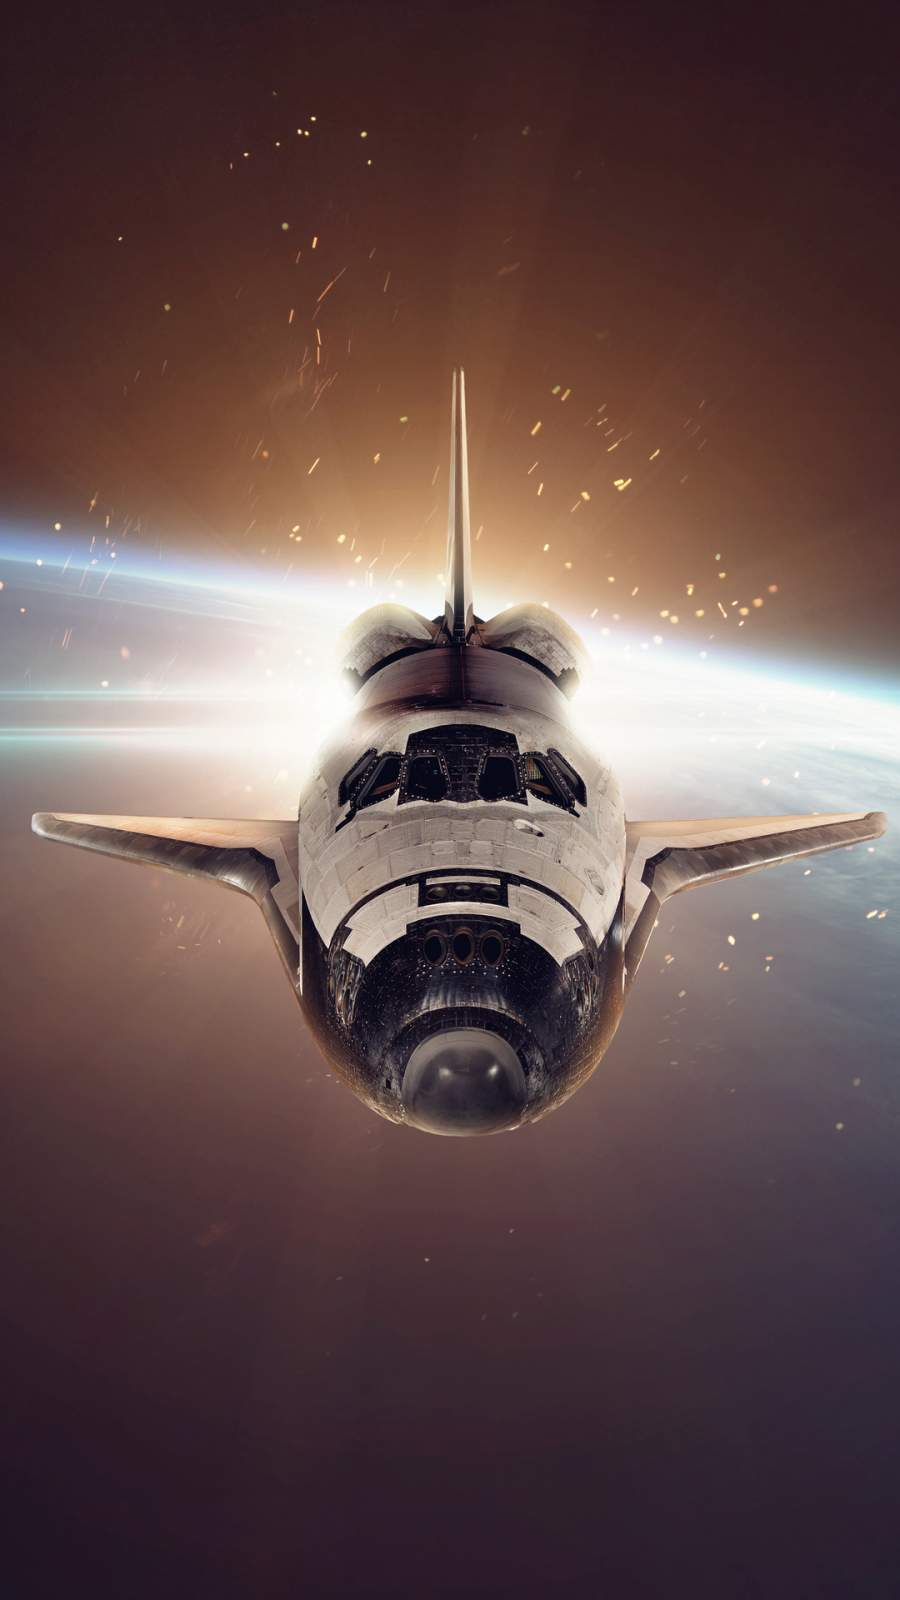 Space Shuttle Over Earth iPhone Wallpaper